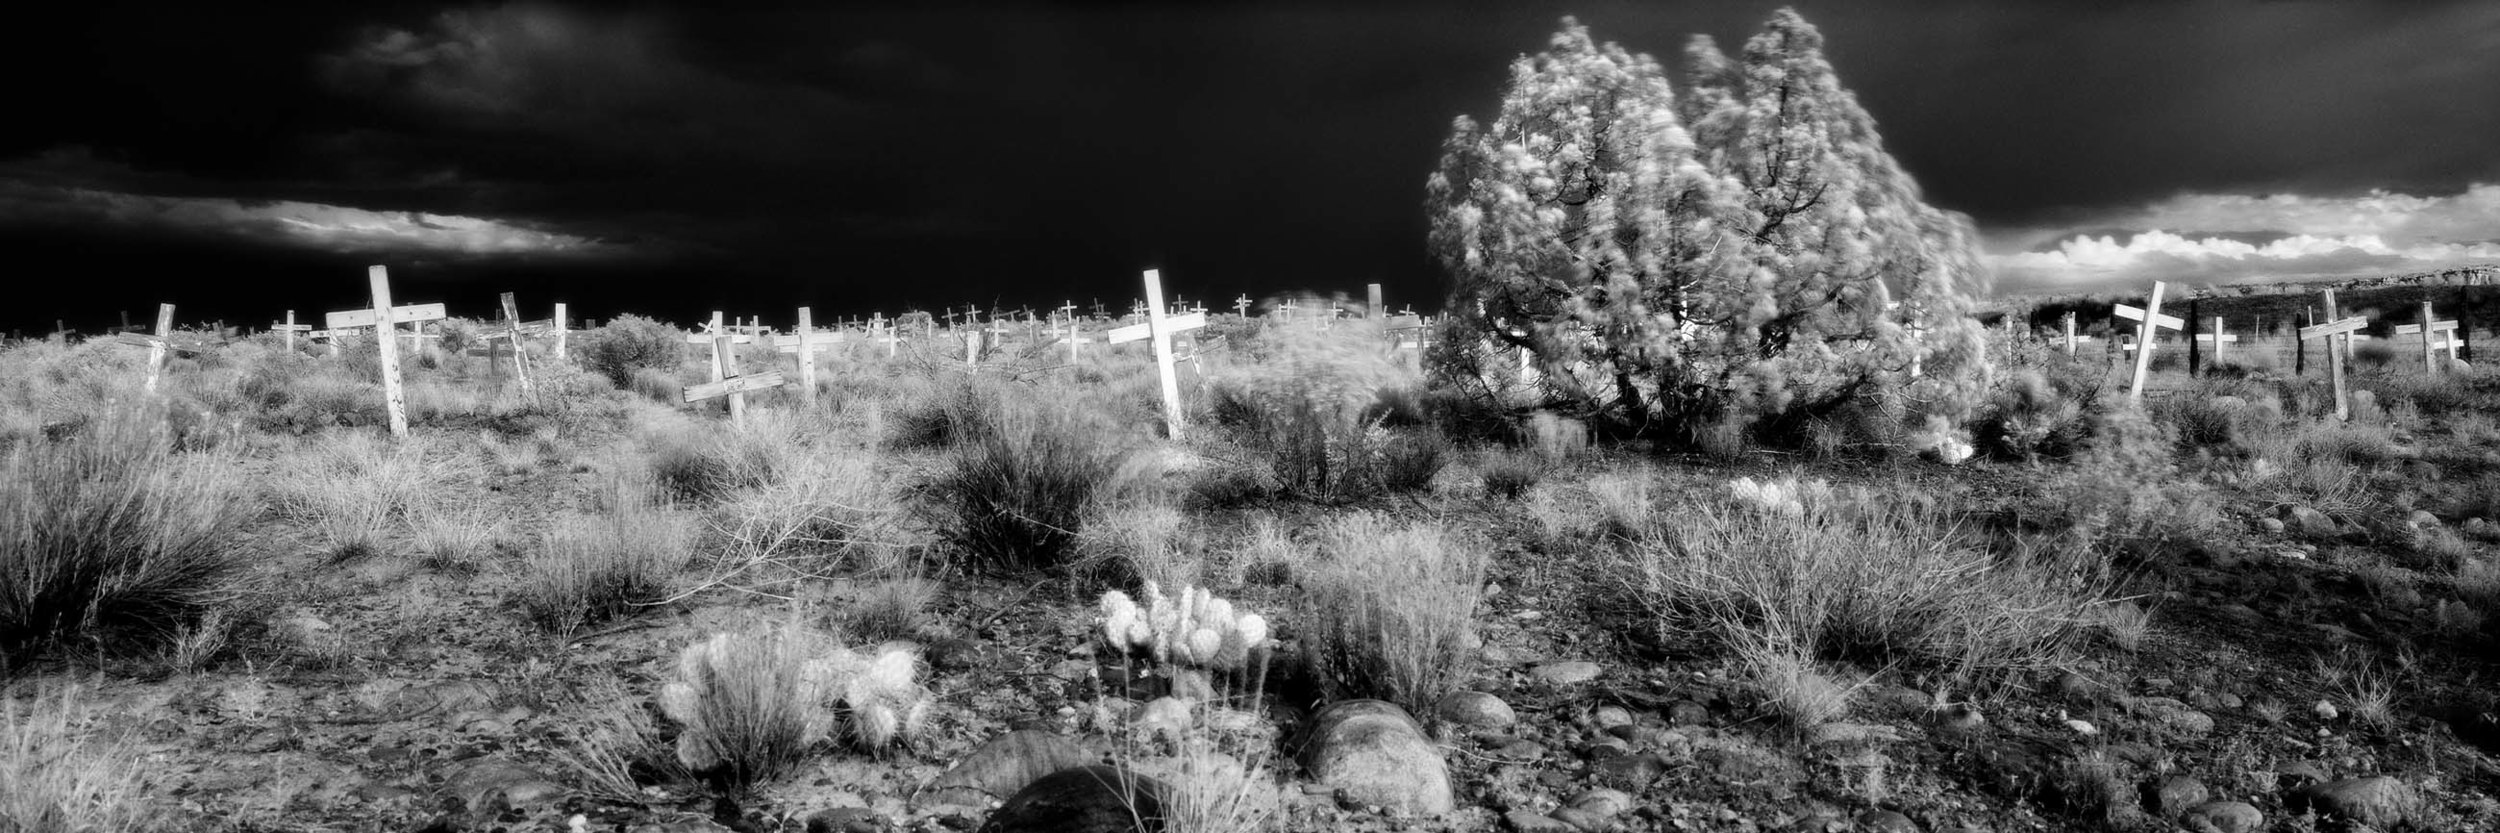 Missionary Cemetery #1